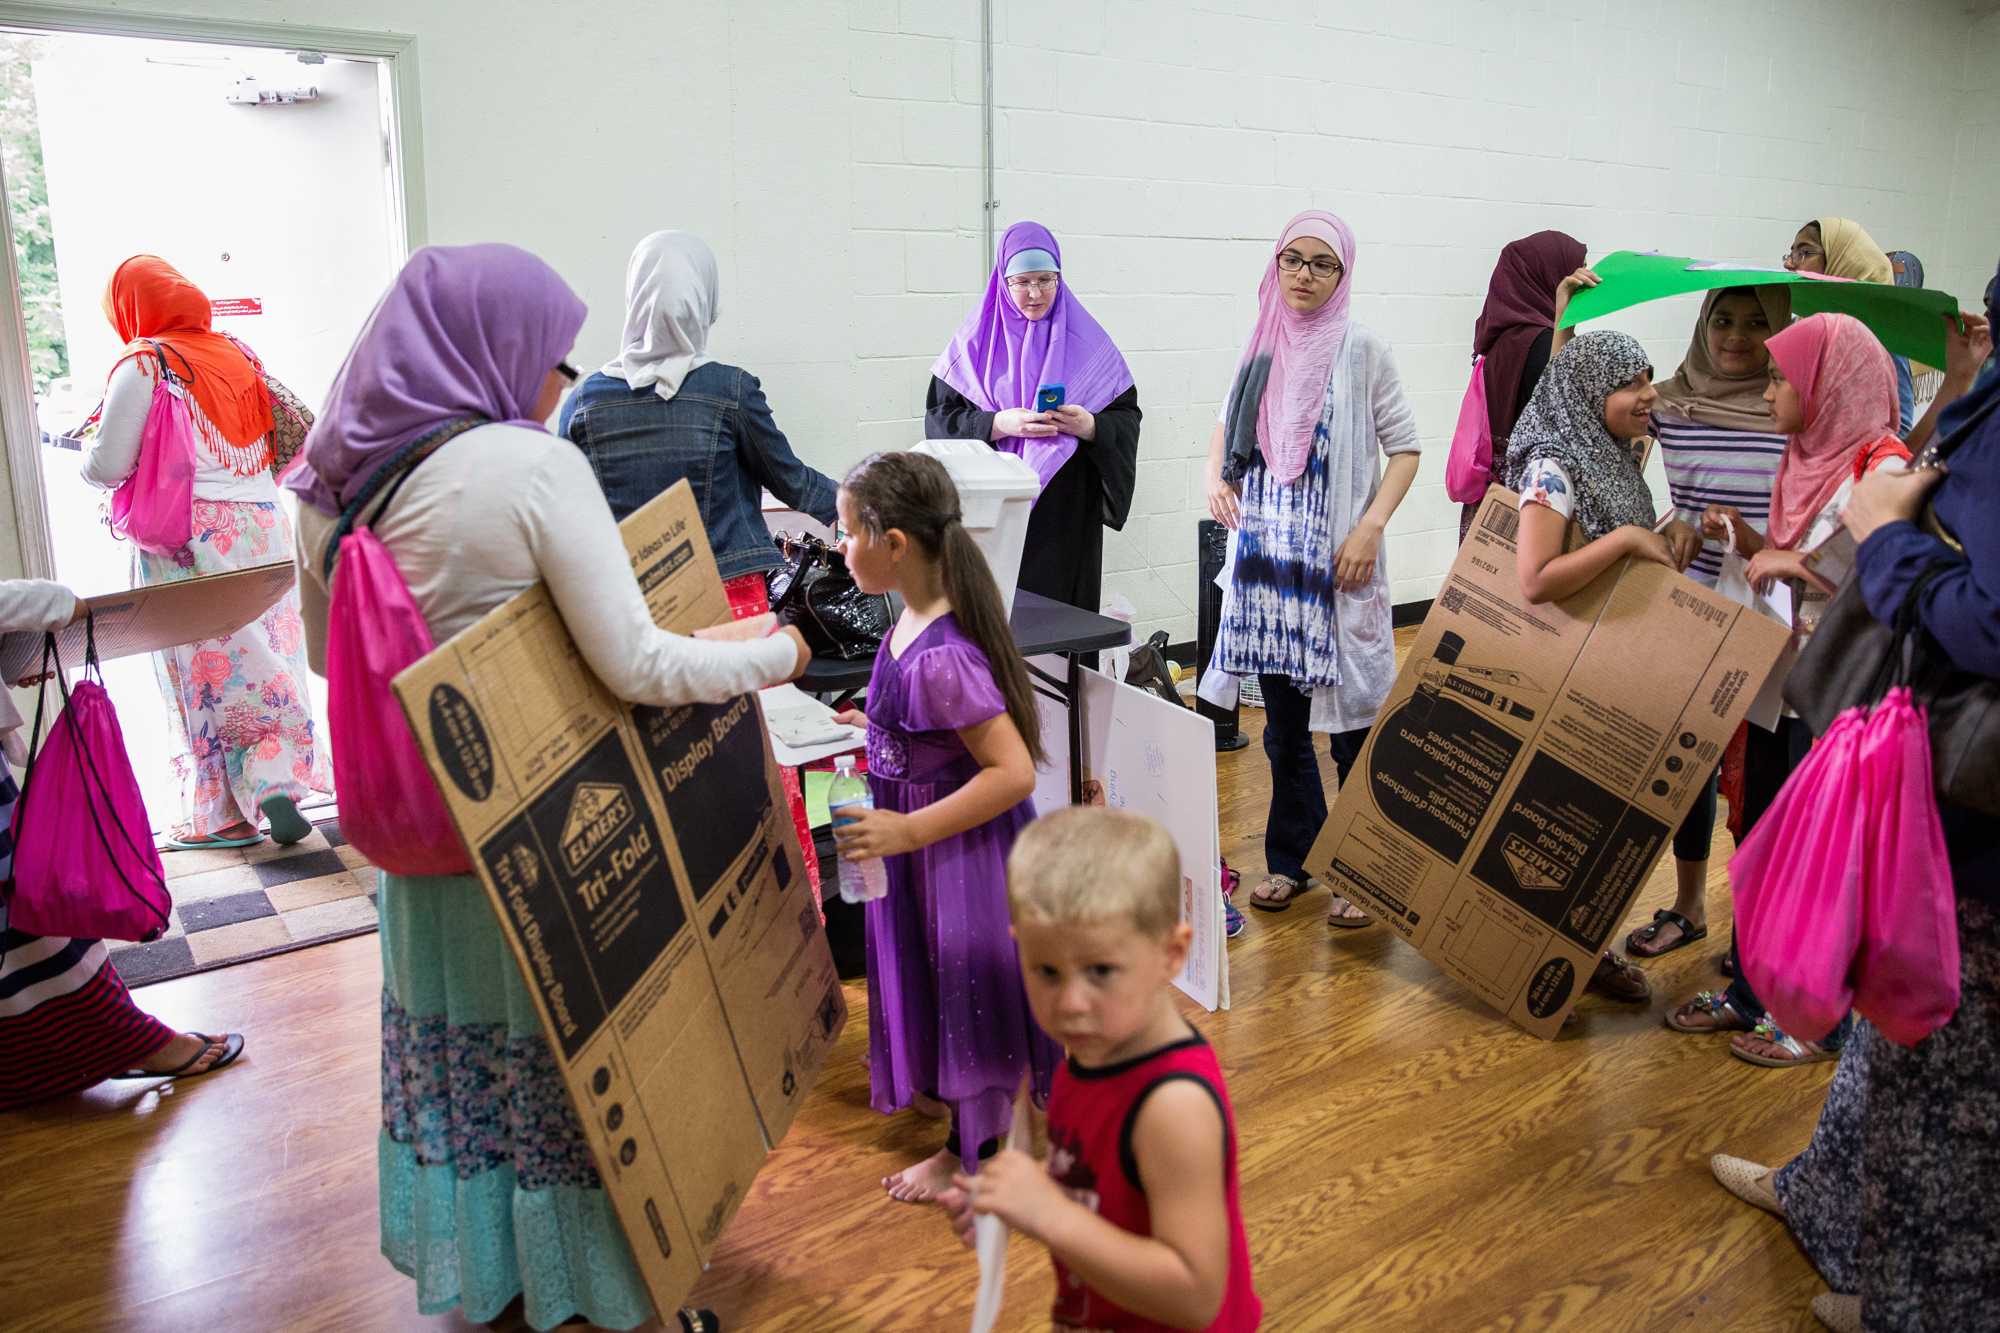 Girls carry poster boards and projects about Muslim inventors after an event at the Masjid in Mechanicsburg. Kareema organized the event as a way for the girls to learn more about their heritage and to help instill a sense of pride about being Muslim.